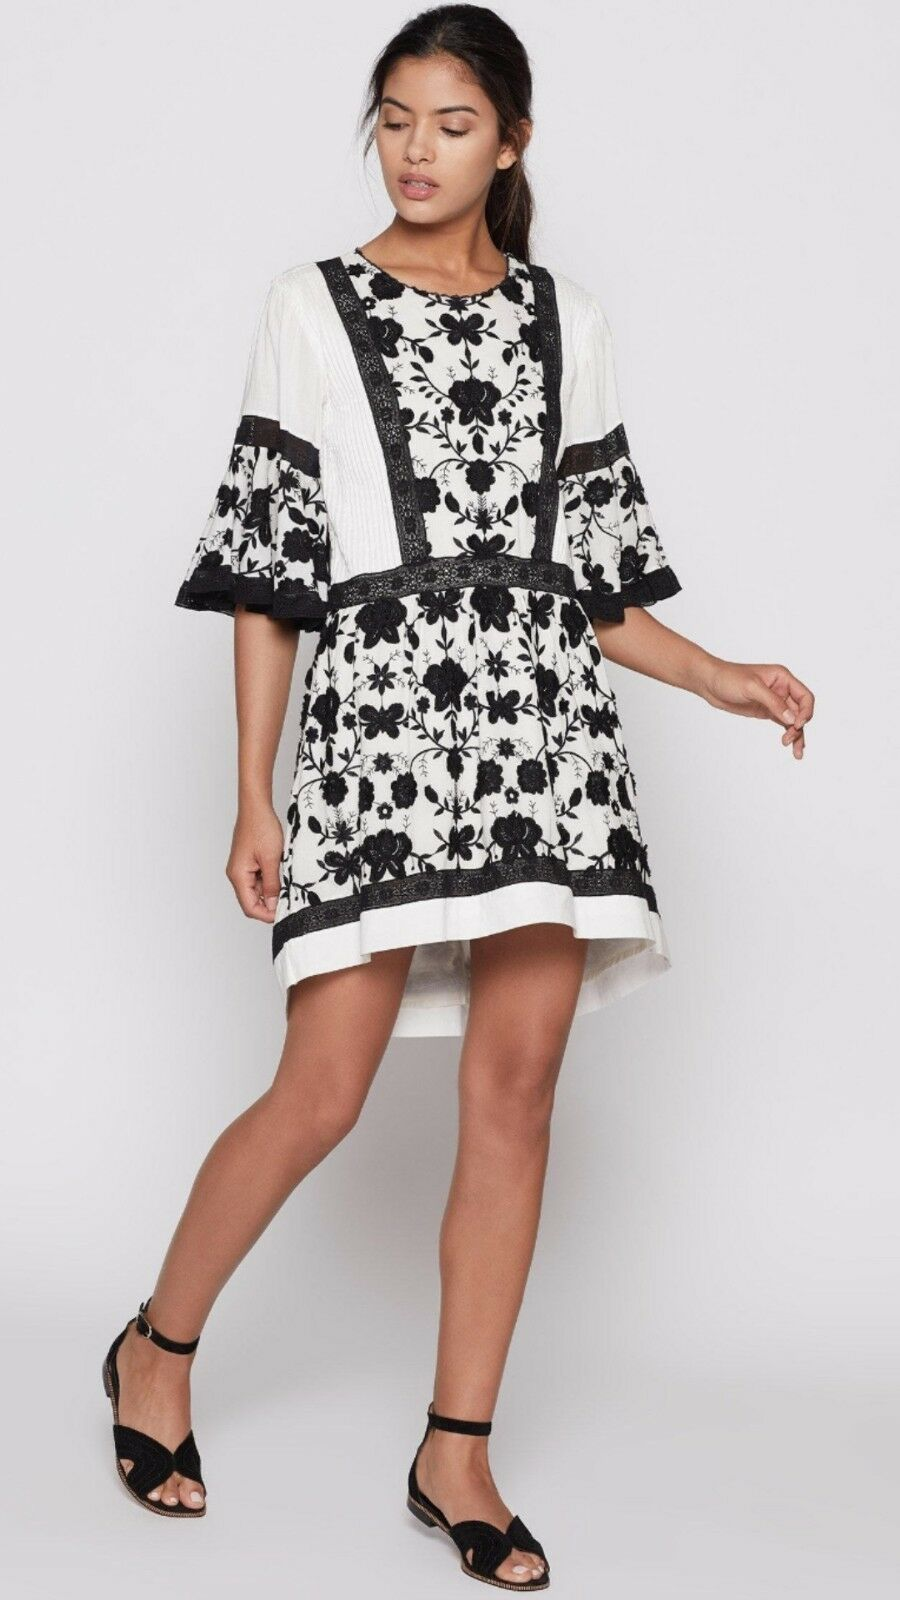 NWT Joie Gaetena Embroidered Dress Sz 6 Retail